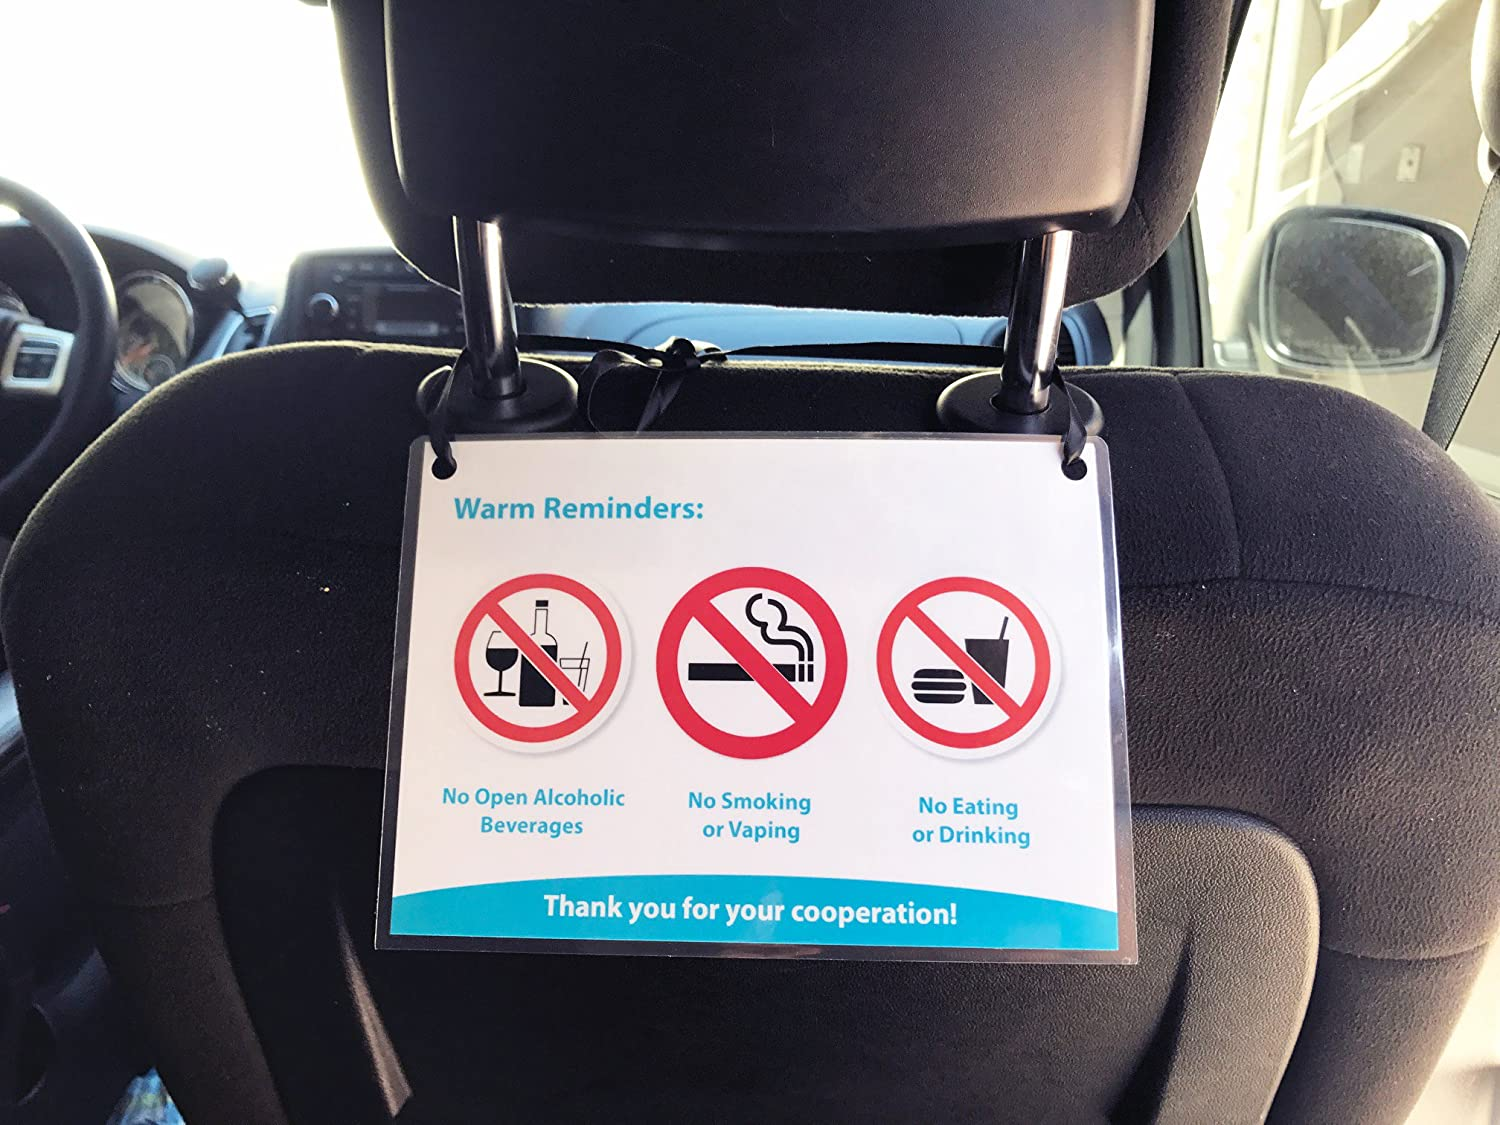 Car Seat Head Rest Covers 2 Pack No Smoking No Drinking White Design Taxi Van